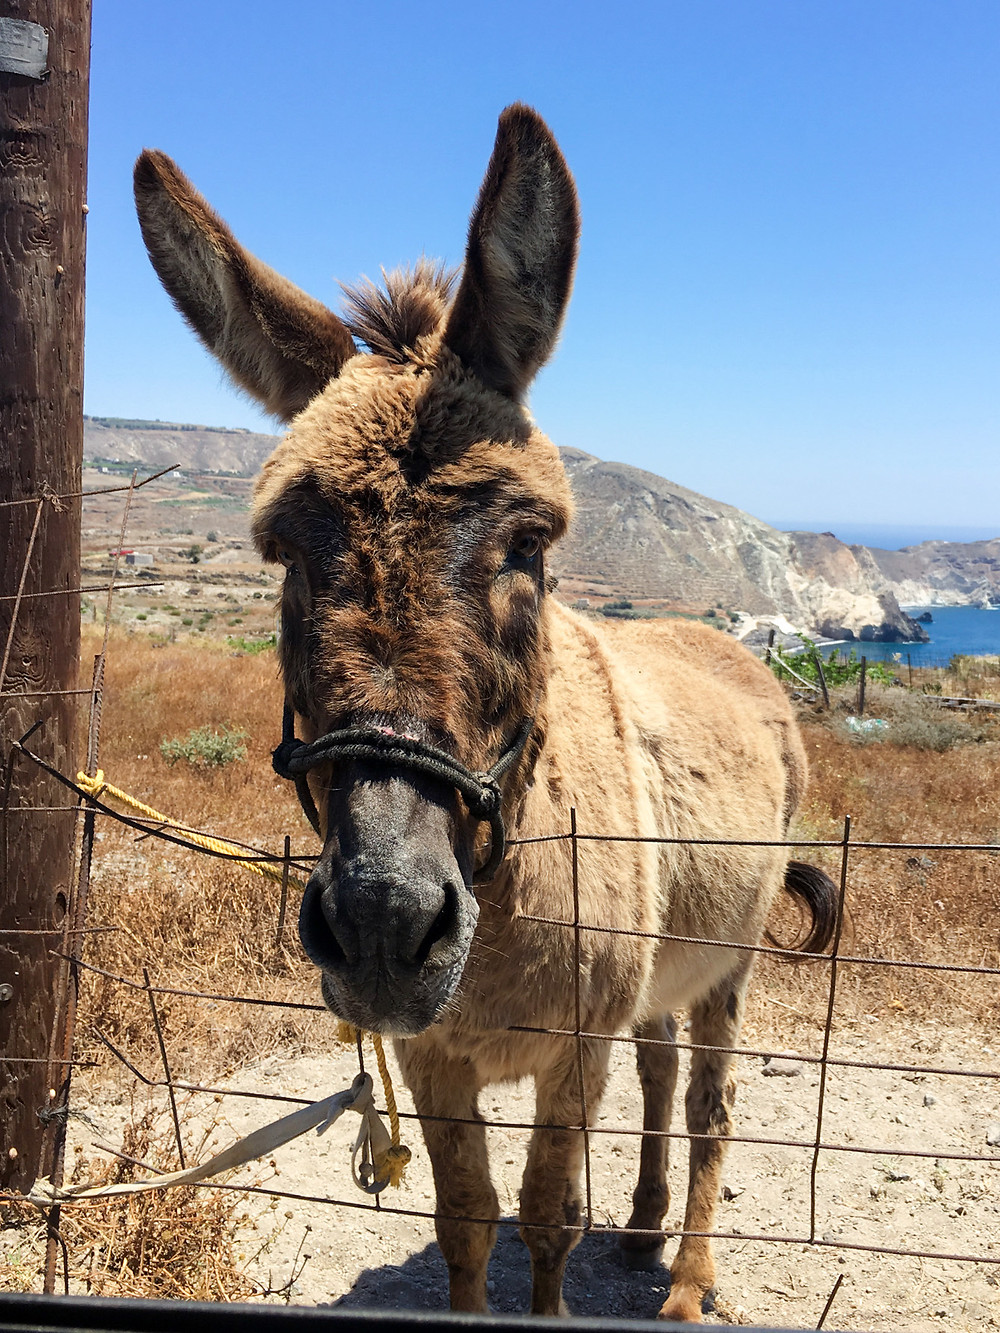 A donkey with its head leaning over a fence in Santorini, Greece